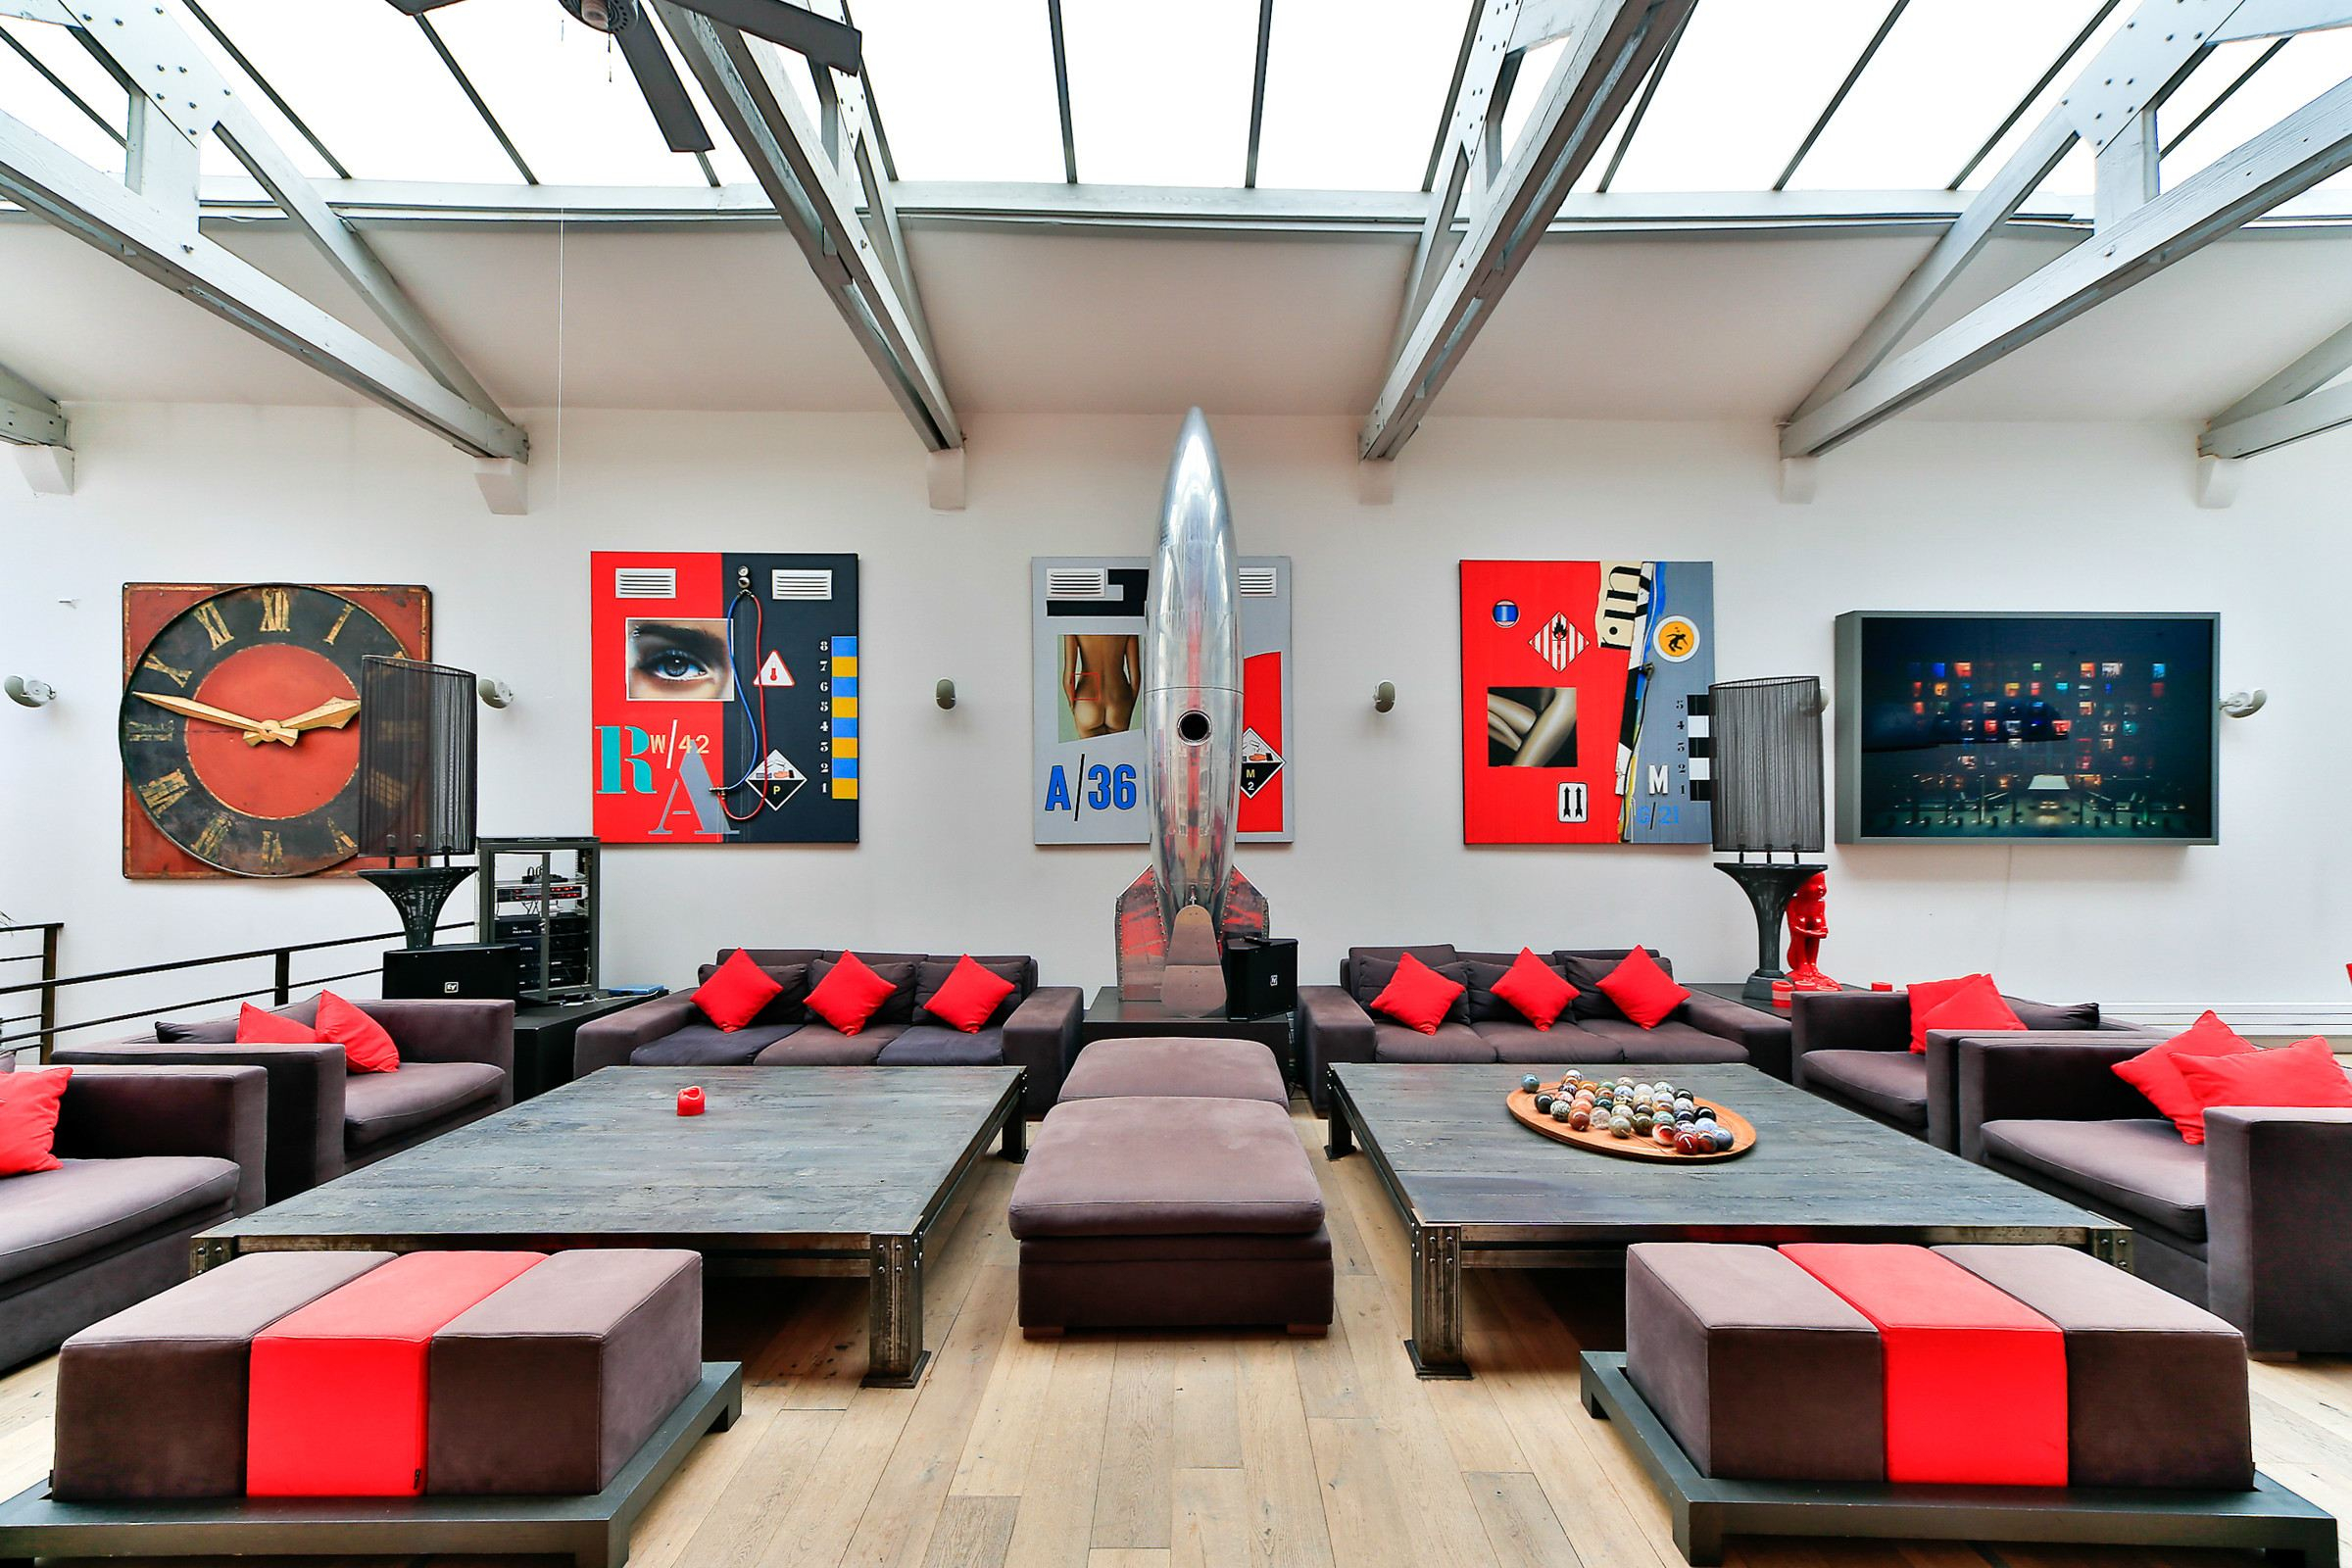 Property For Sale at Puteaux - Center. A 800 sq.m Townhouse / Loft, renovated by a designer